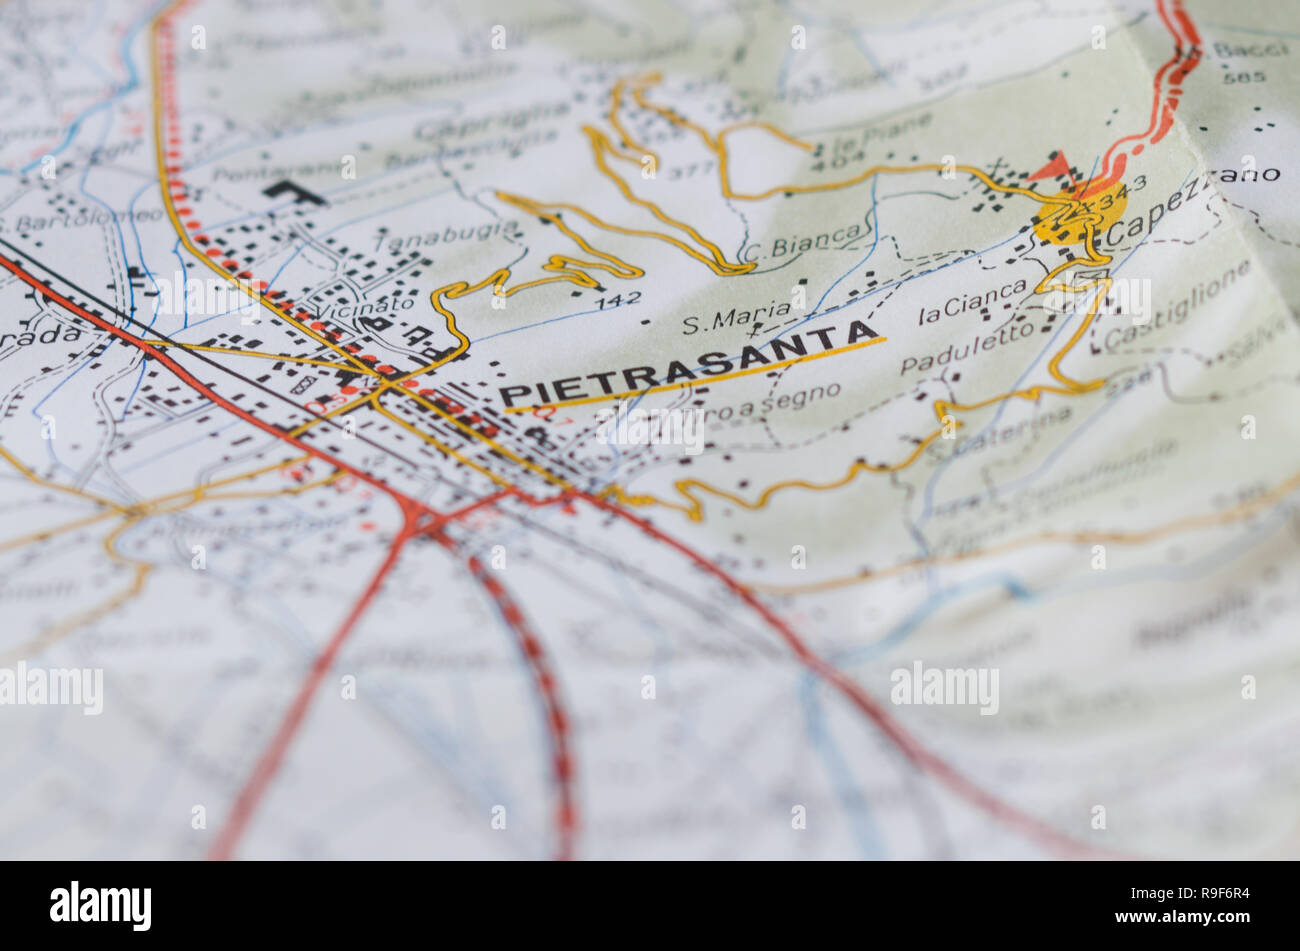 Detailed Map Of Tuscany Italy.Detailed Map Of An Italian Town Located In Tuscany Get On The